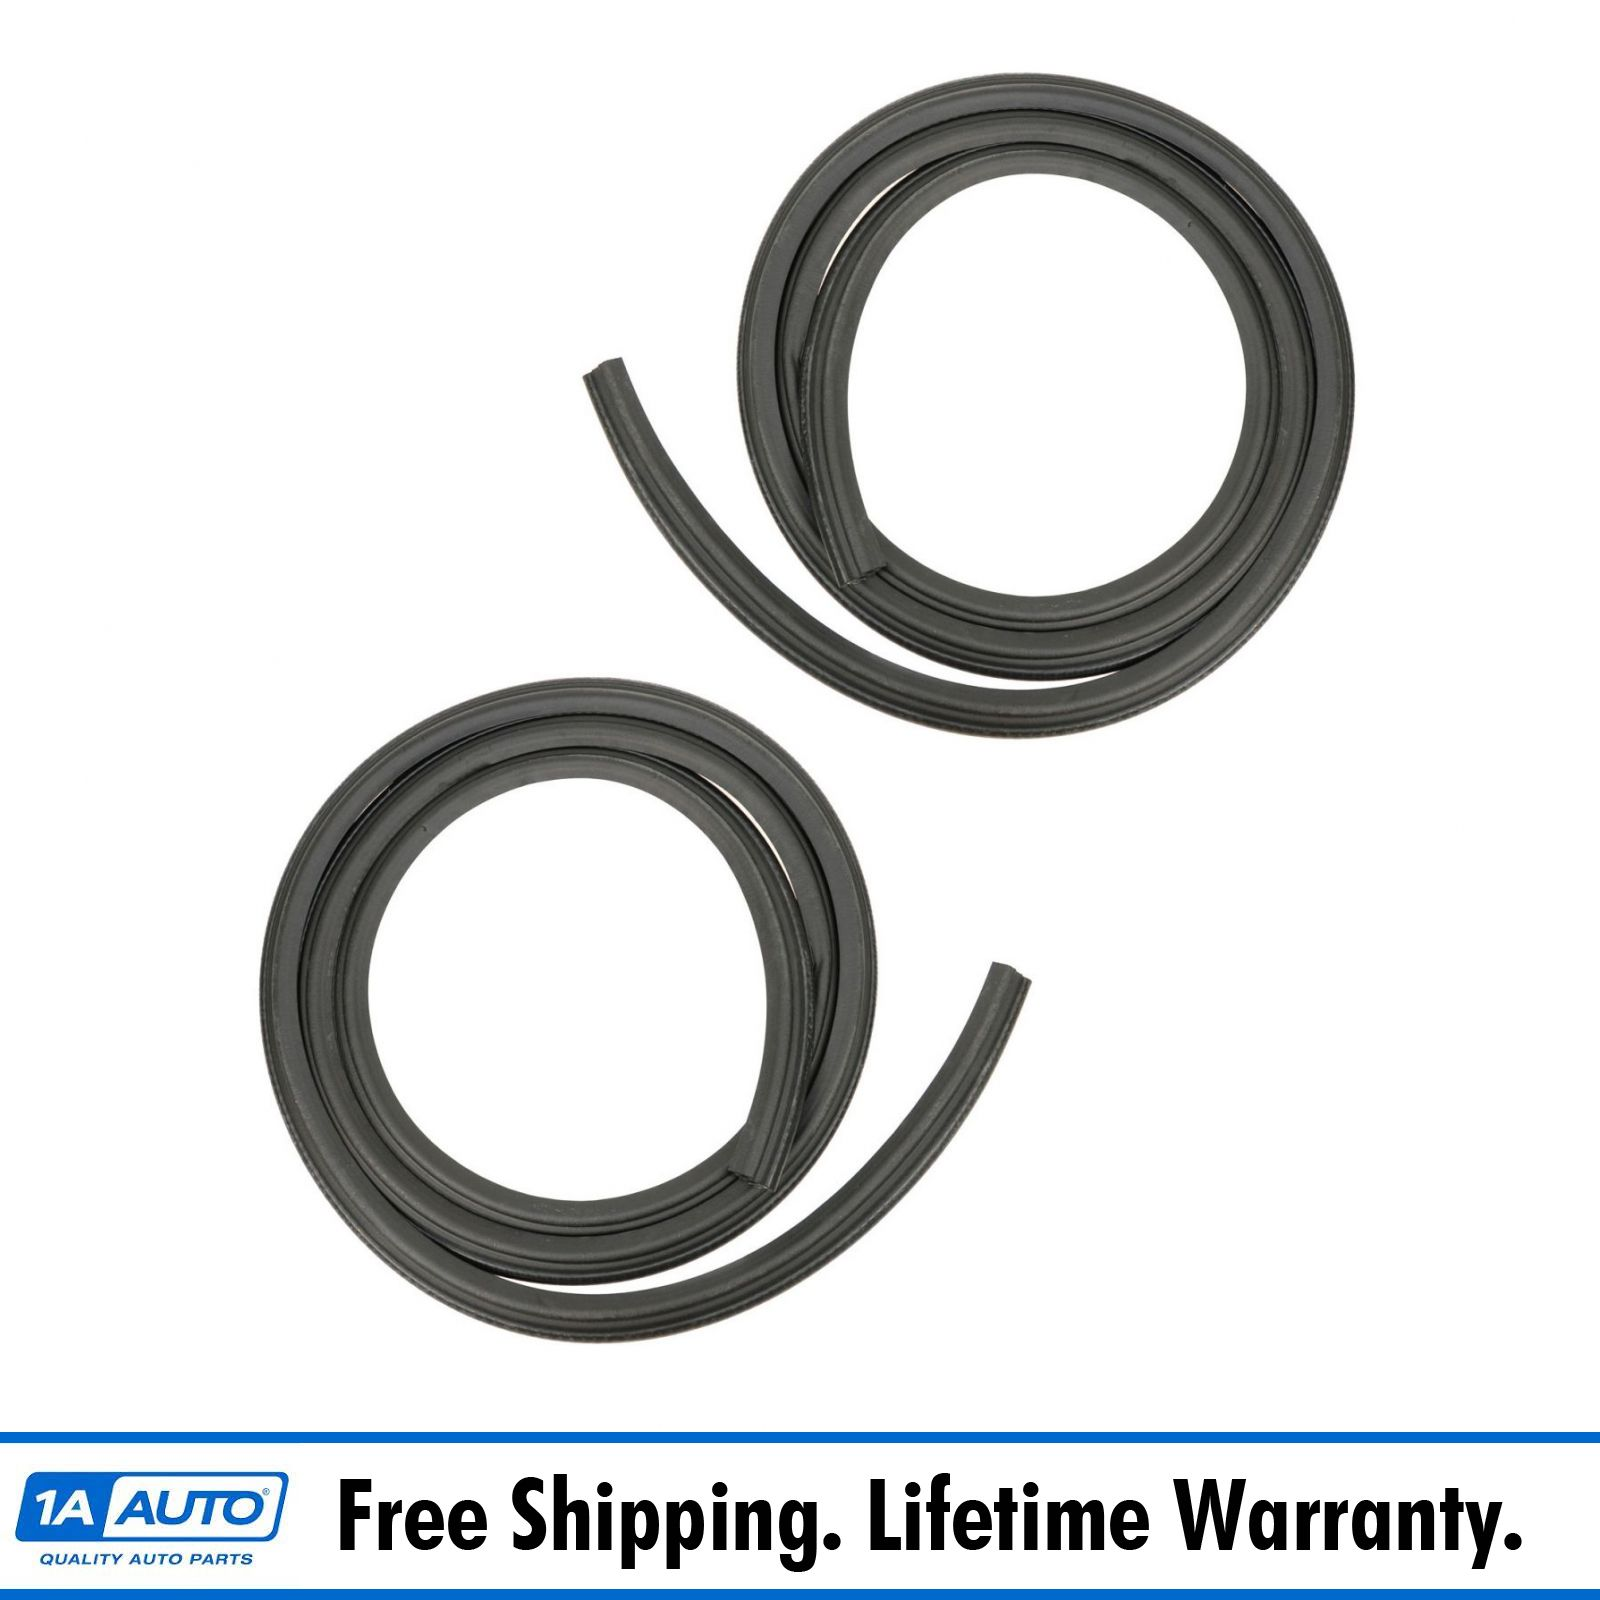 Rubber Door Weatherstrip Seals Pair Set for Chevy GMC Tahoe Suburban Yukon